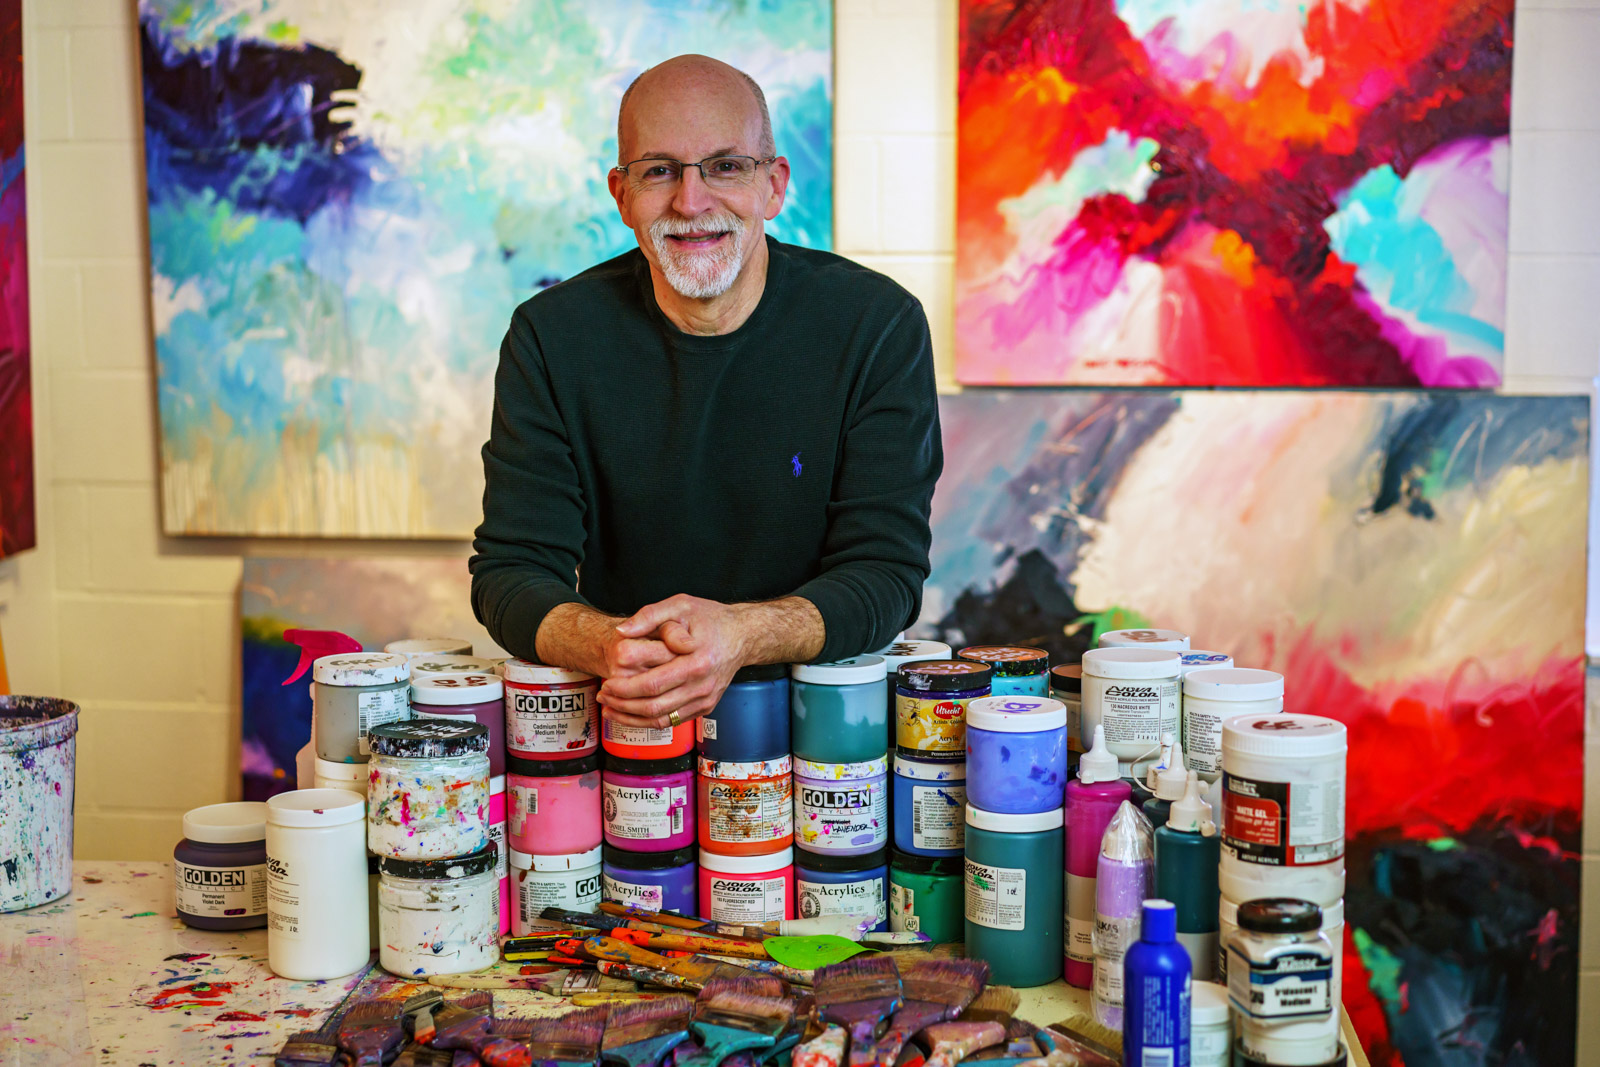 Hi, I'm David. - An Award Winning Abstract Painter, Nationally Recognized Art Educator, Juror and Author dedicated to helping YOU become a better painter, period.Through live workshop events, books, videos and online training courses I help painters, both amateur and professional alike, to loosen up their painting style, understand art design fundamentals and discover the joy and freedom of abstract painting. Painting that comes from the heart, not the head.I am ready to Instruct, Inspire and Motivate YOU to become the painter YOU have always wanted to be.Read David's Story